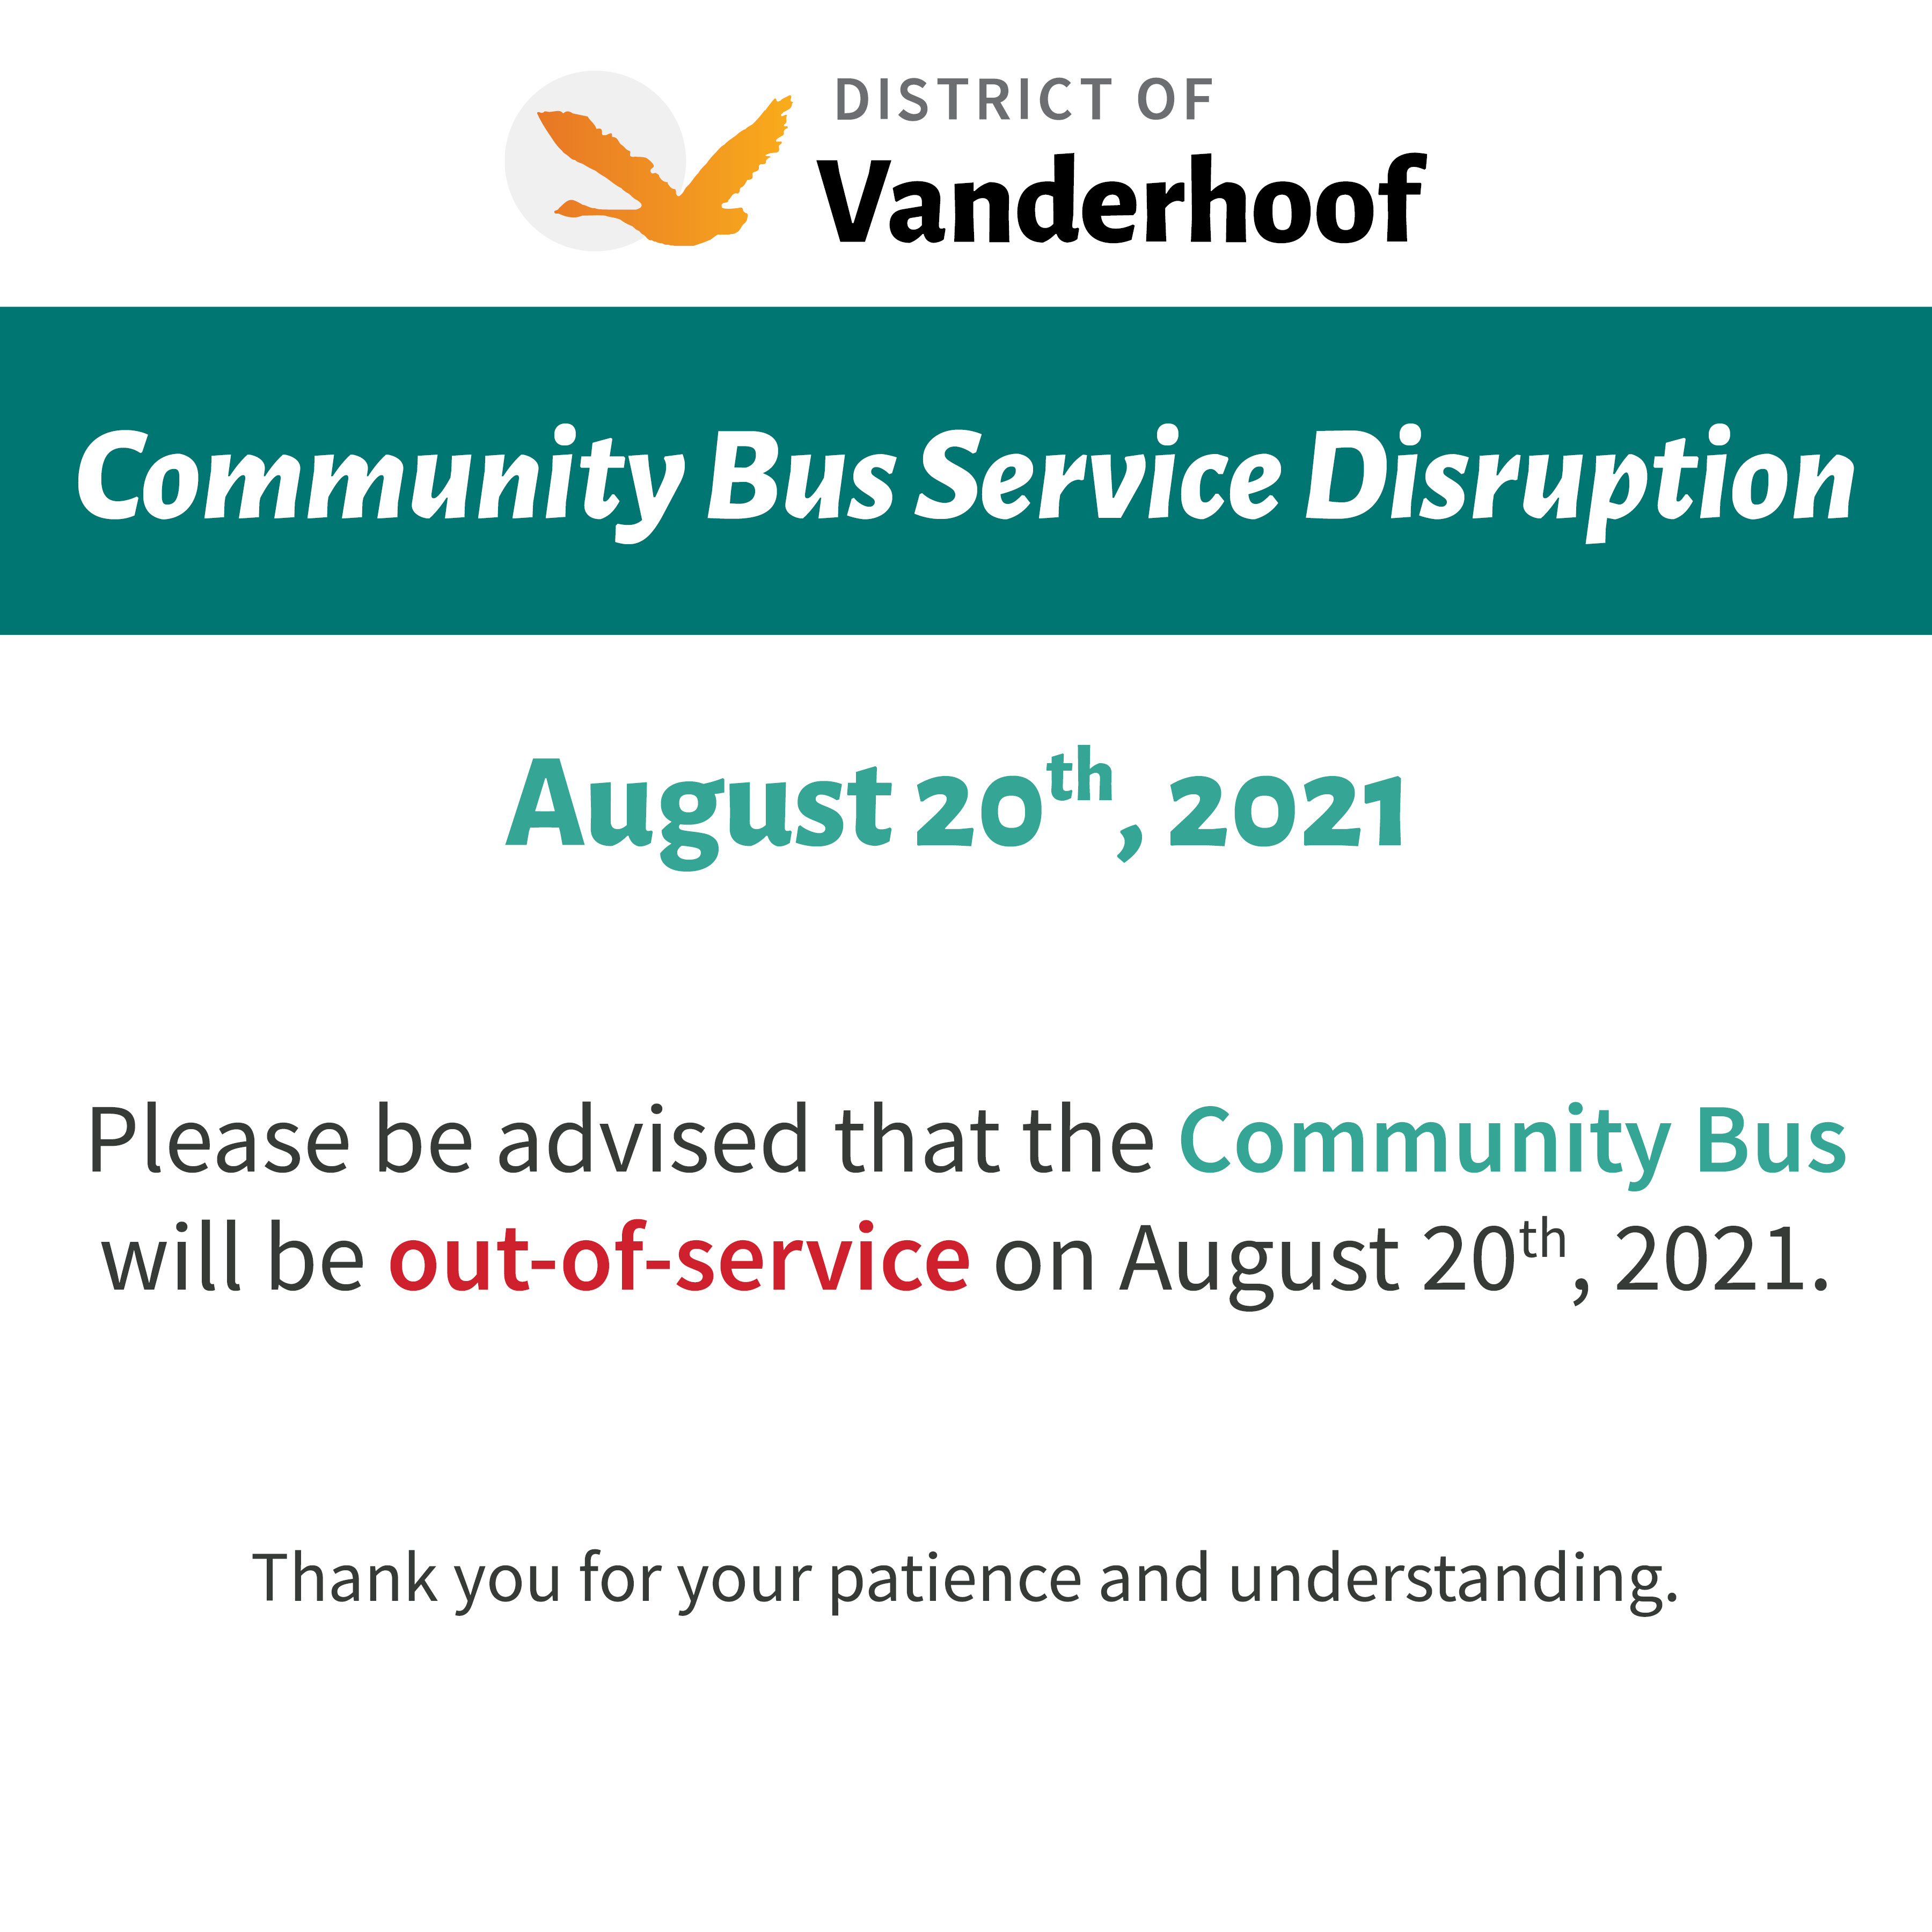 Community Bus Service Disruption. August 20th, 2021. Please be advised that the Community Bus will be out-of-service on August 20th, 2021. Thank you for your patience and understanding.